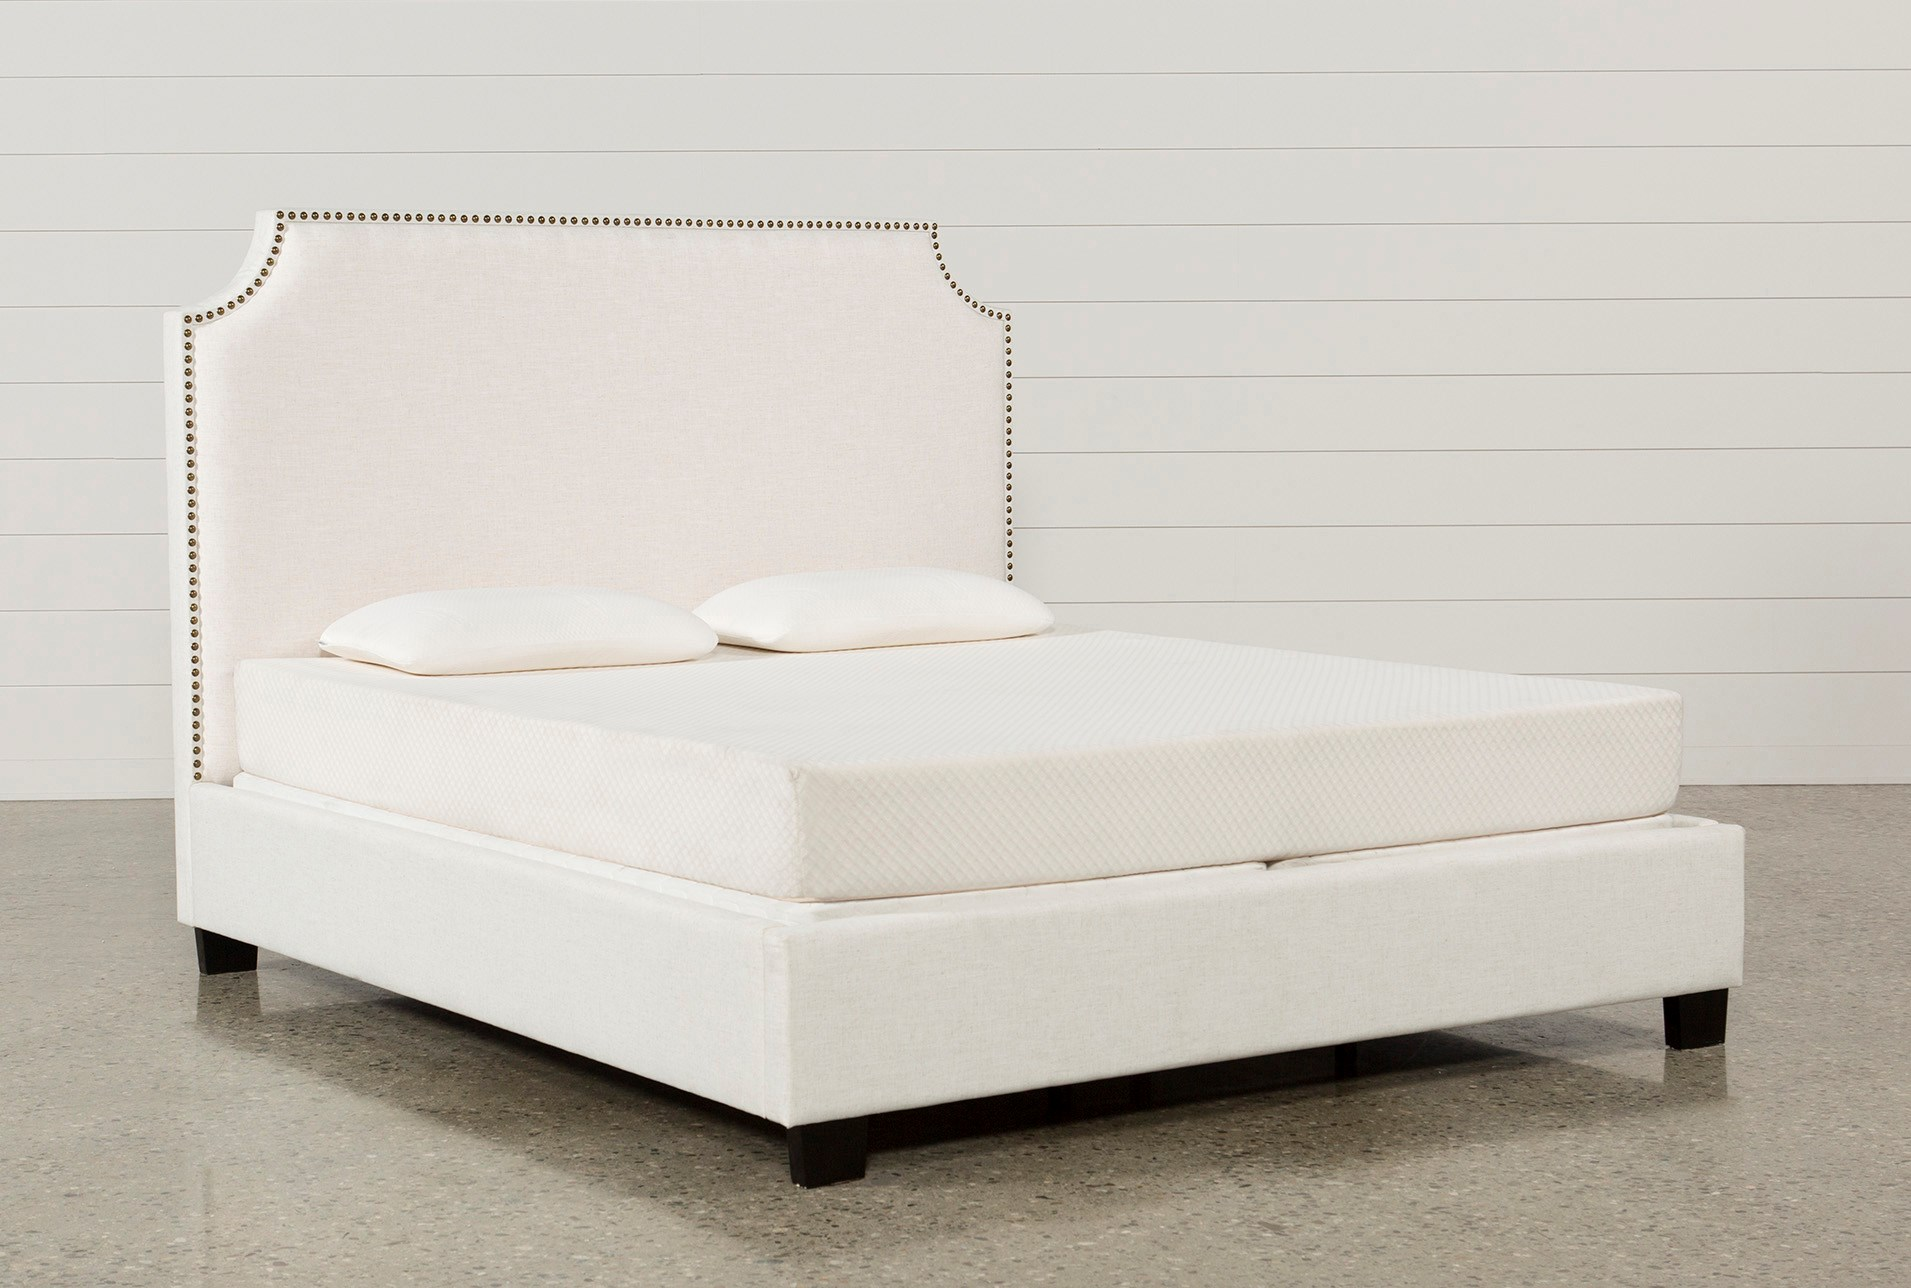 Beds & Bed Frames - Free embly with Delivery | Living Spaces Decorating Small Bedrooms With King Bed Html on small master bedroom, small bedroom vaulted ceilings, small bedroom chair, sofa king bed, small room king bed, small bedroom patio, small bedroom suite, small bedroom lounge, small bedroom dresser, small bedroom couch, small bedroom desk, small bedroom queen, king size bed, small bedroom porch, small bedroom bench, small bedroom stereo, small bedroom entertainment center, home king bed, small bedroom design, small bedroom safe,